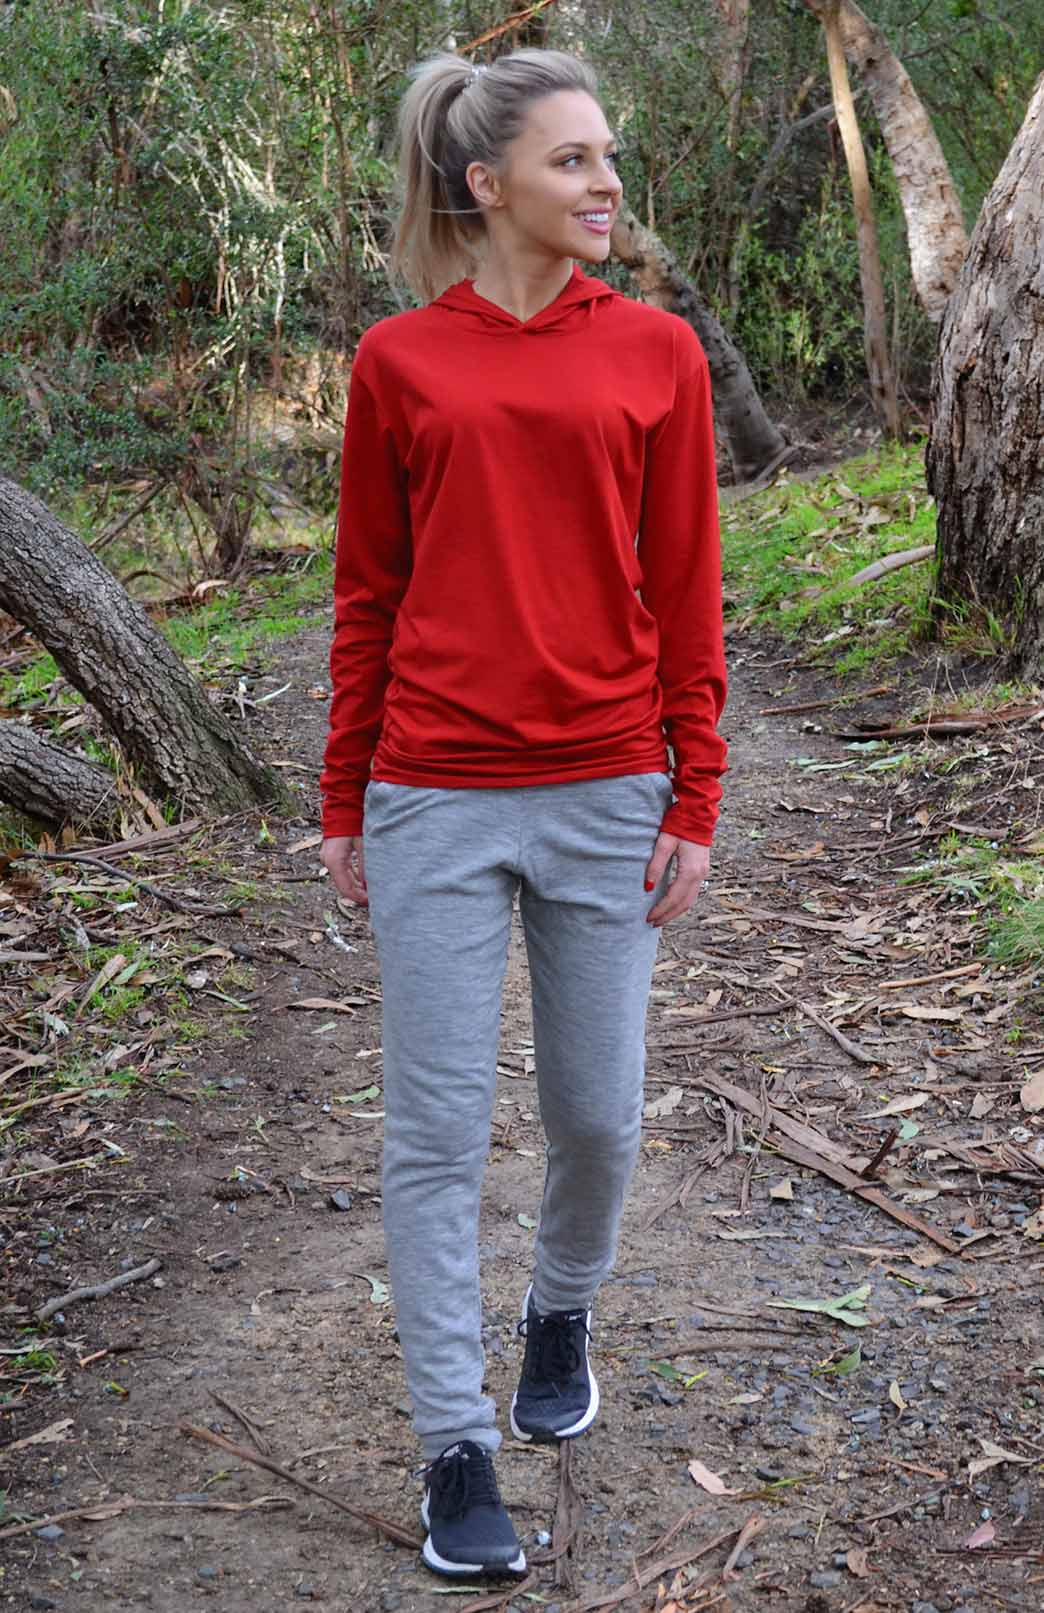 Crew Hoody (200g) - Women's Lightweight 200g Wool Long Sleeved Crew Neck Top with hood - Smitten Merino Tasmania Australia